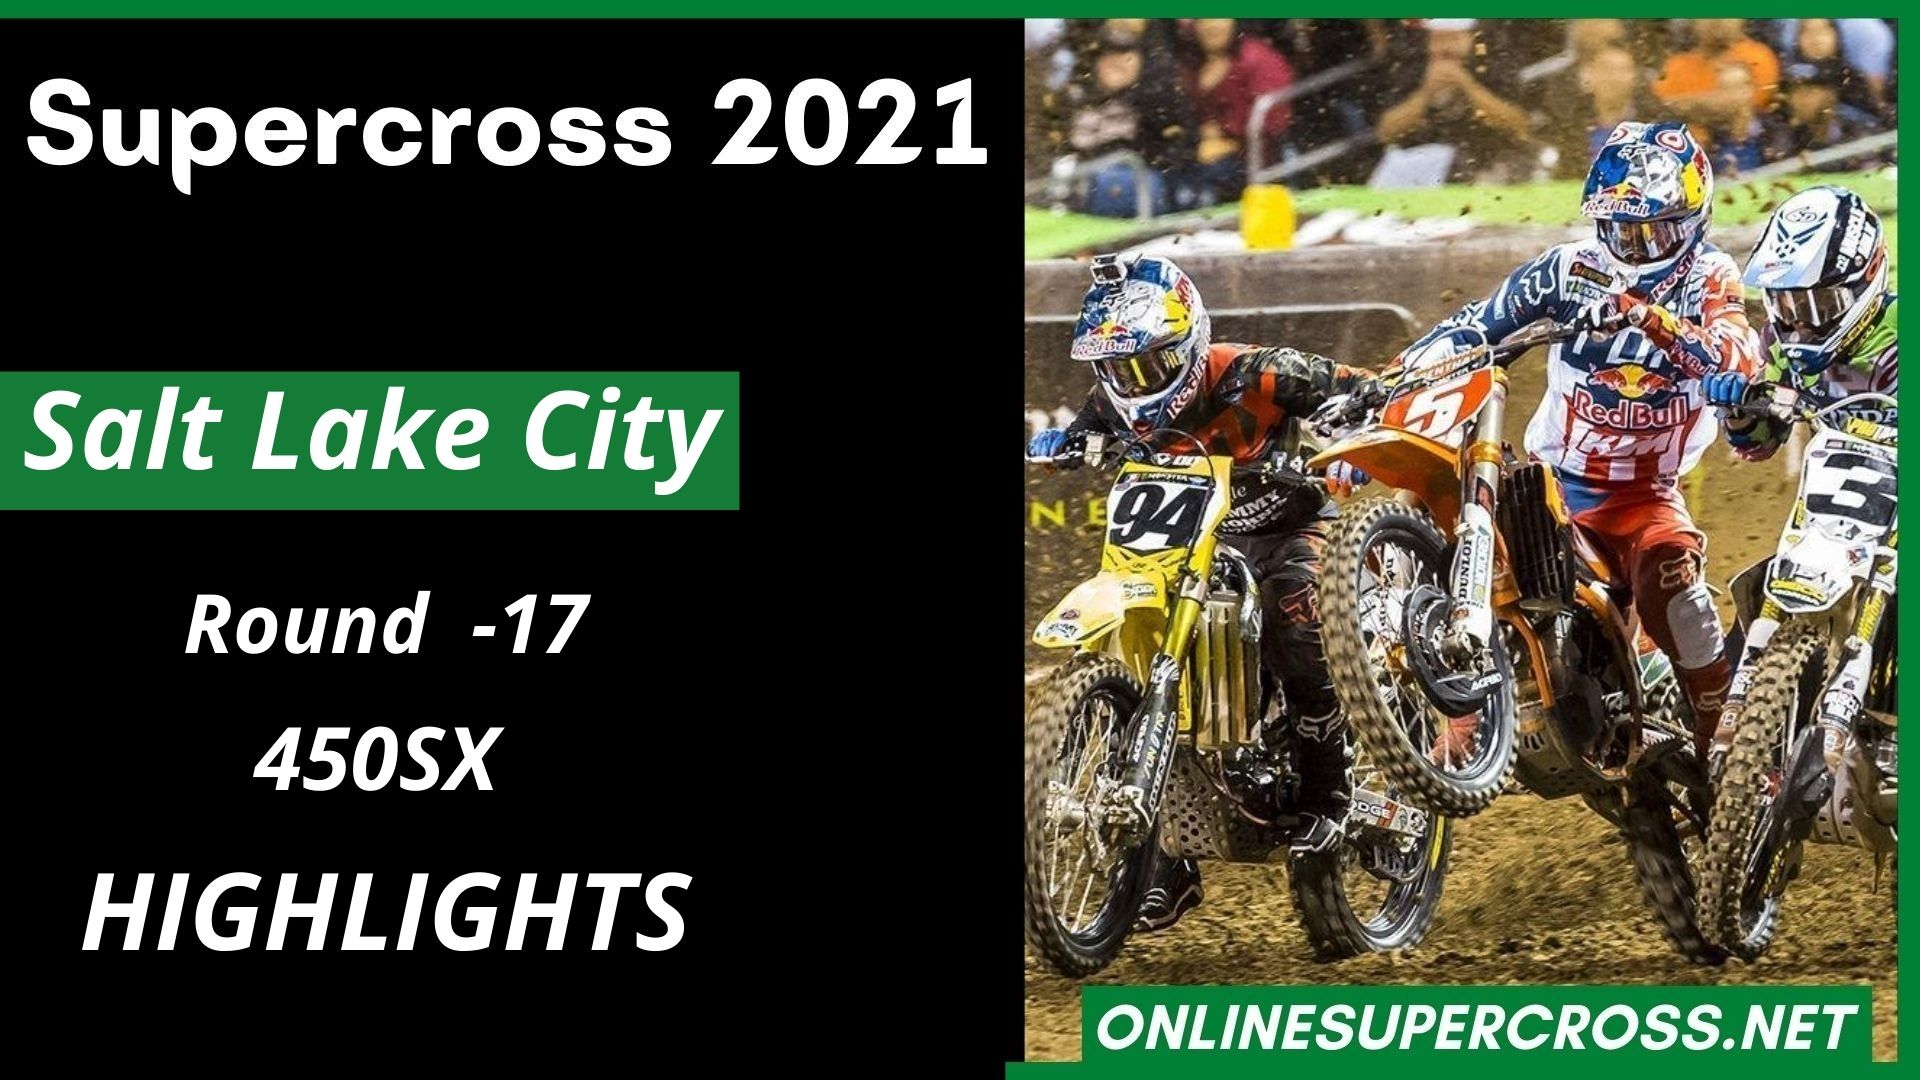 Salt Lake City Round 17 Supercross 450SX Highlights 2021